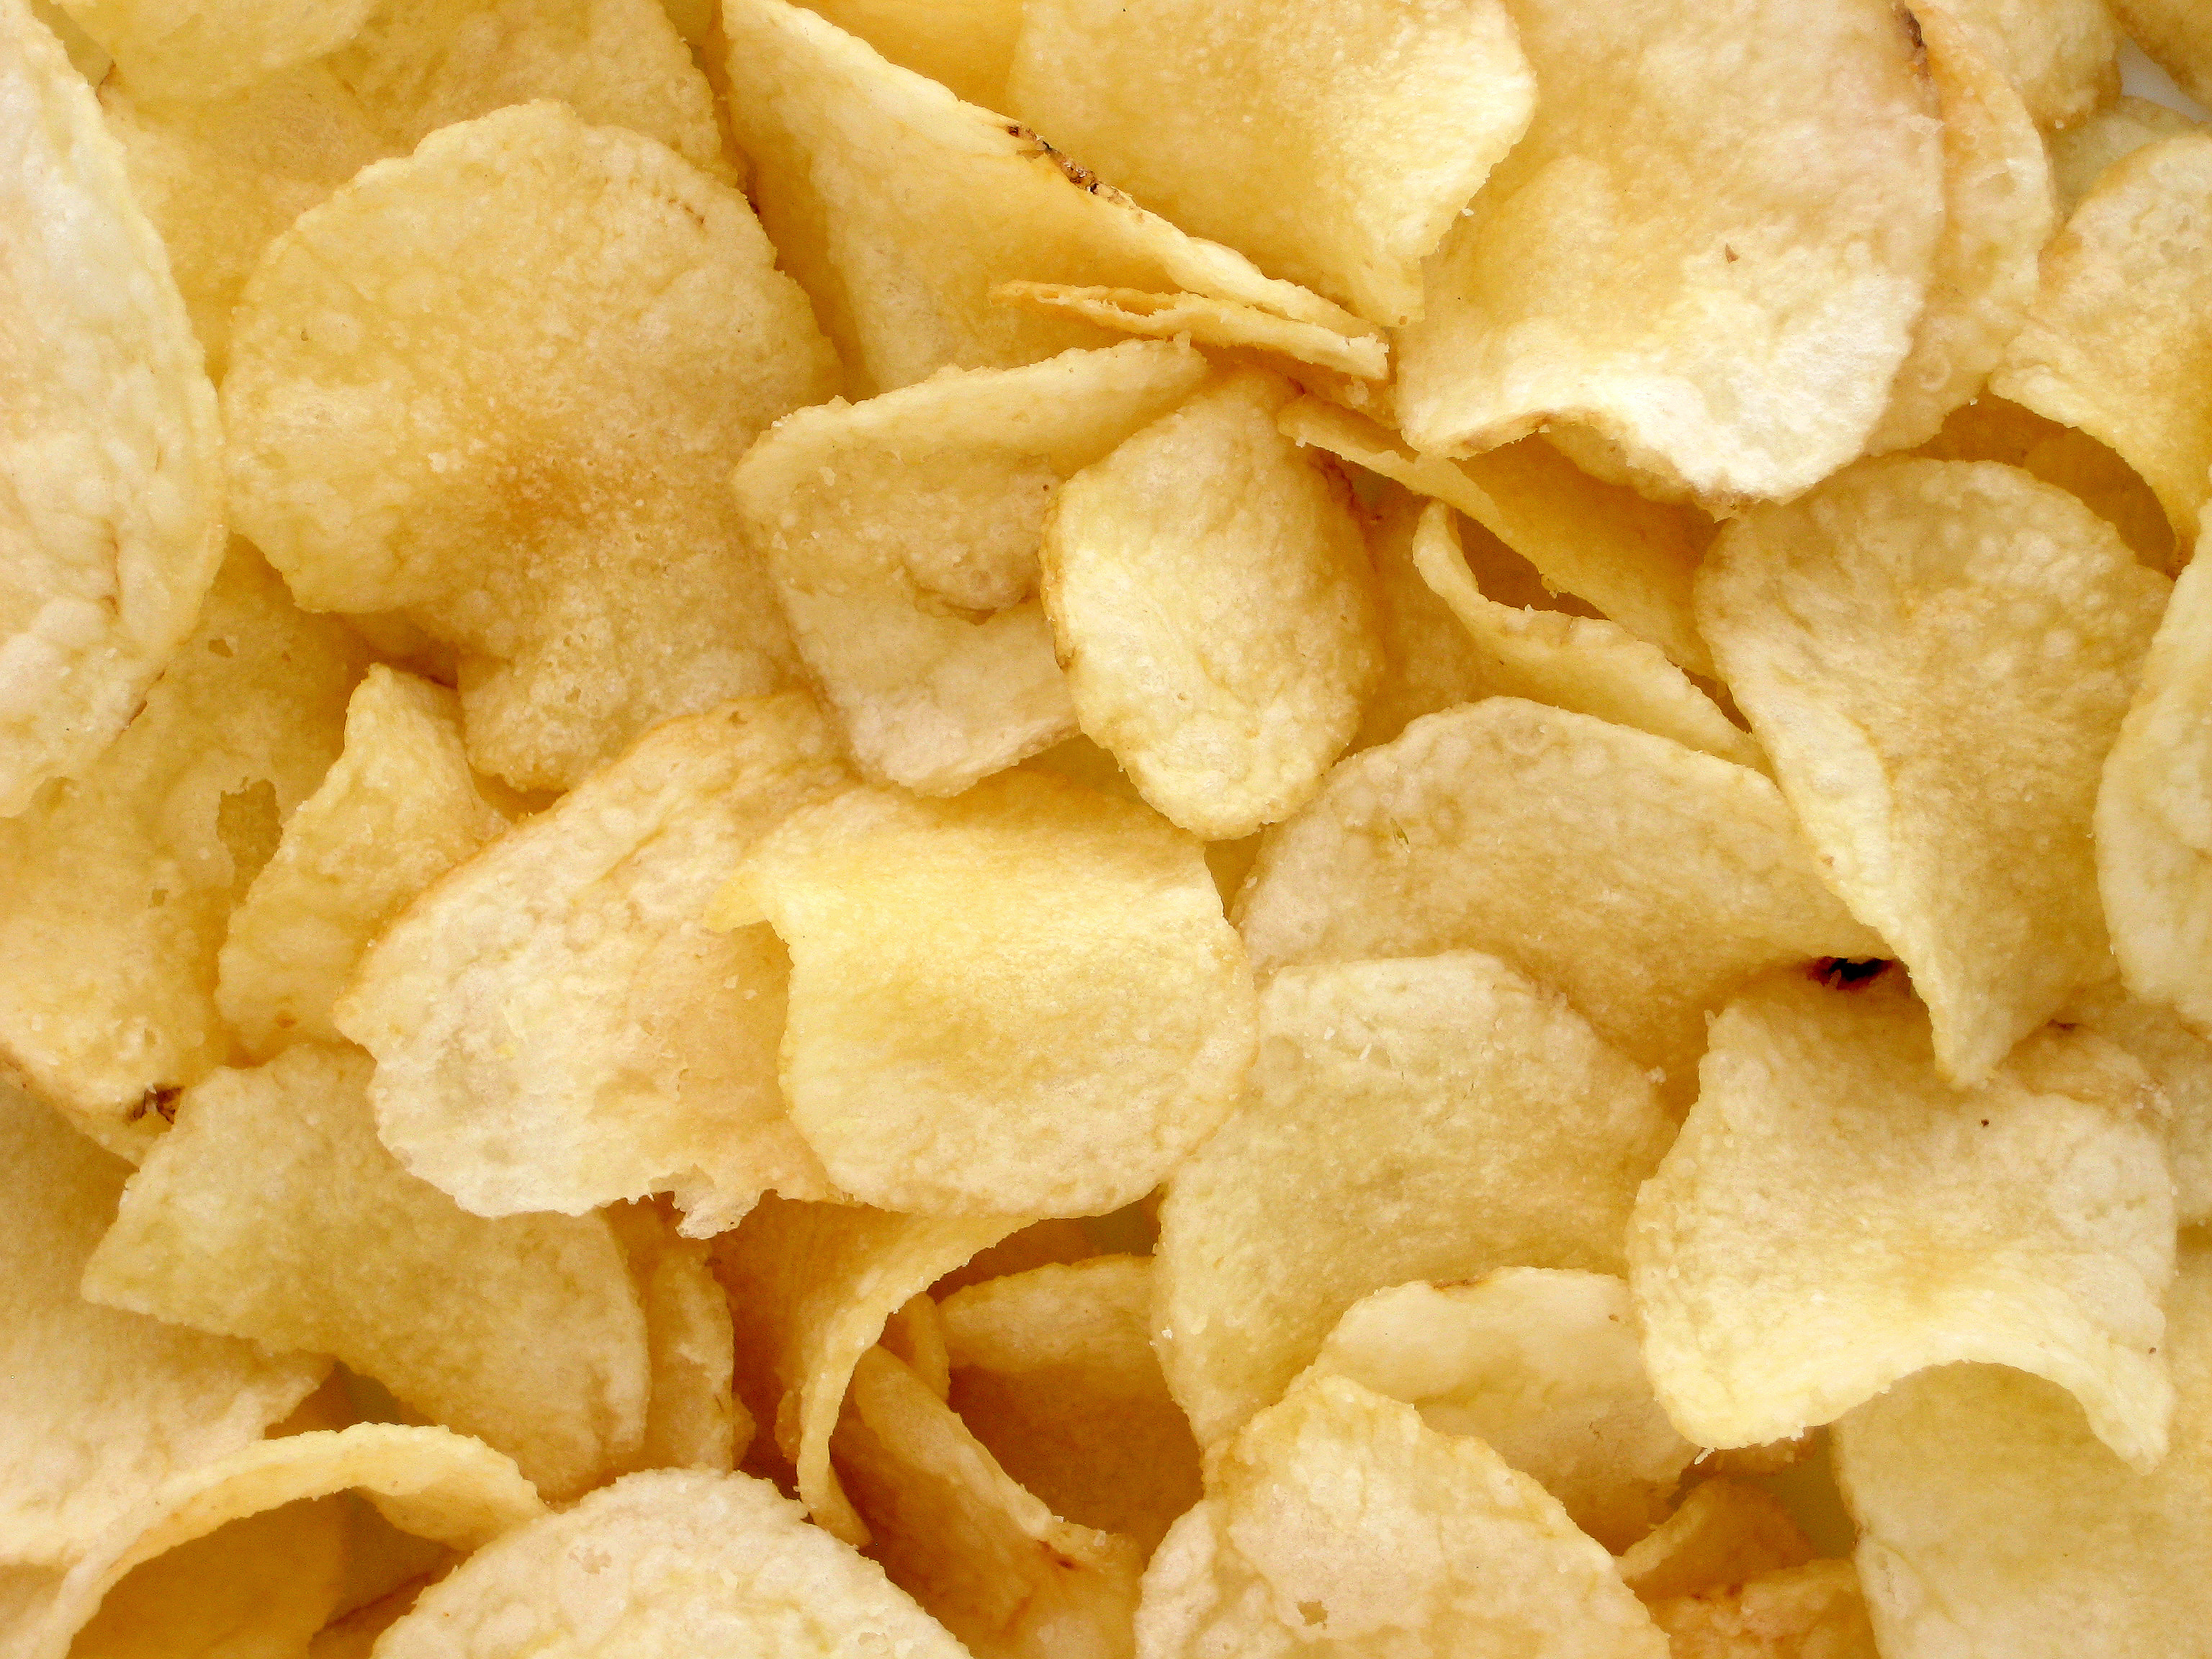 Description Potato Chips Jpg